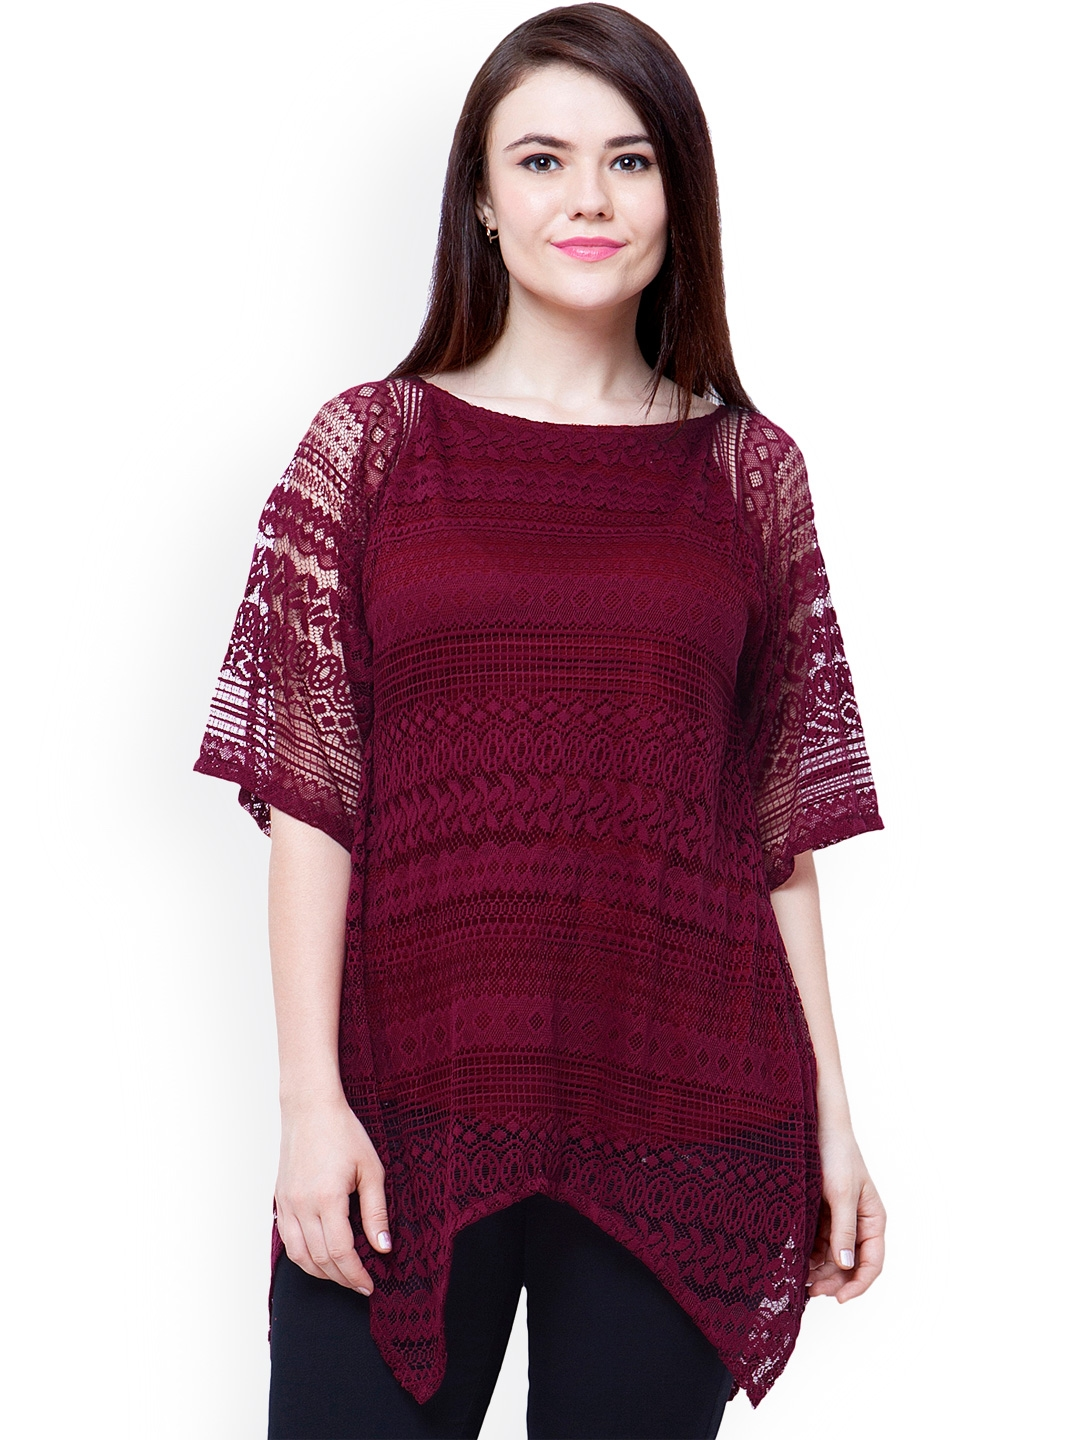 a5fc652dac4df Buy FabAlley Curve Maroon Lace Top - Tops for Women 1410928